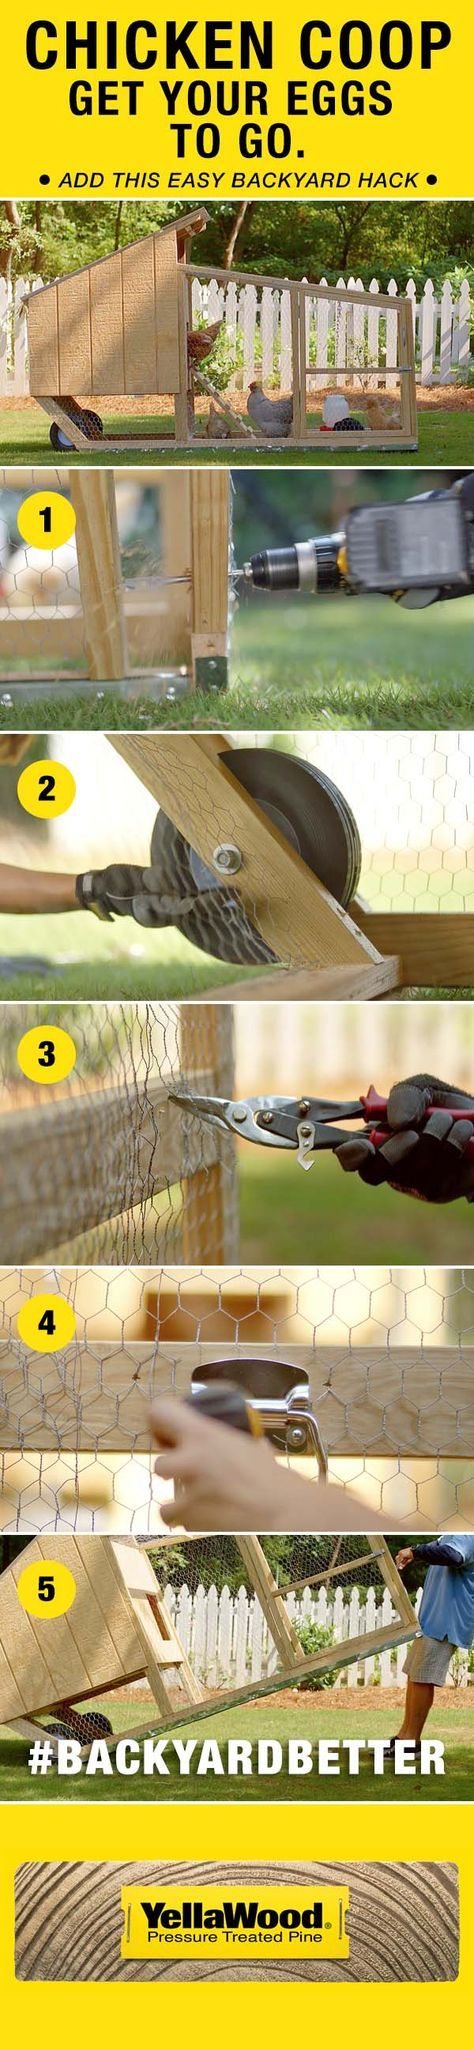 get your eggs to go with this easy chicken coop backyard hack